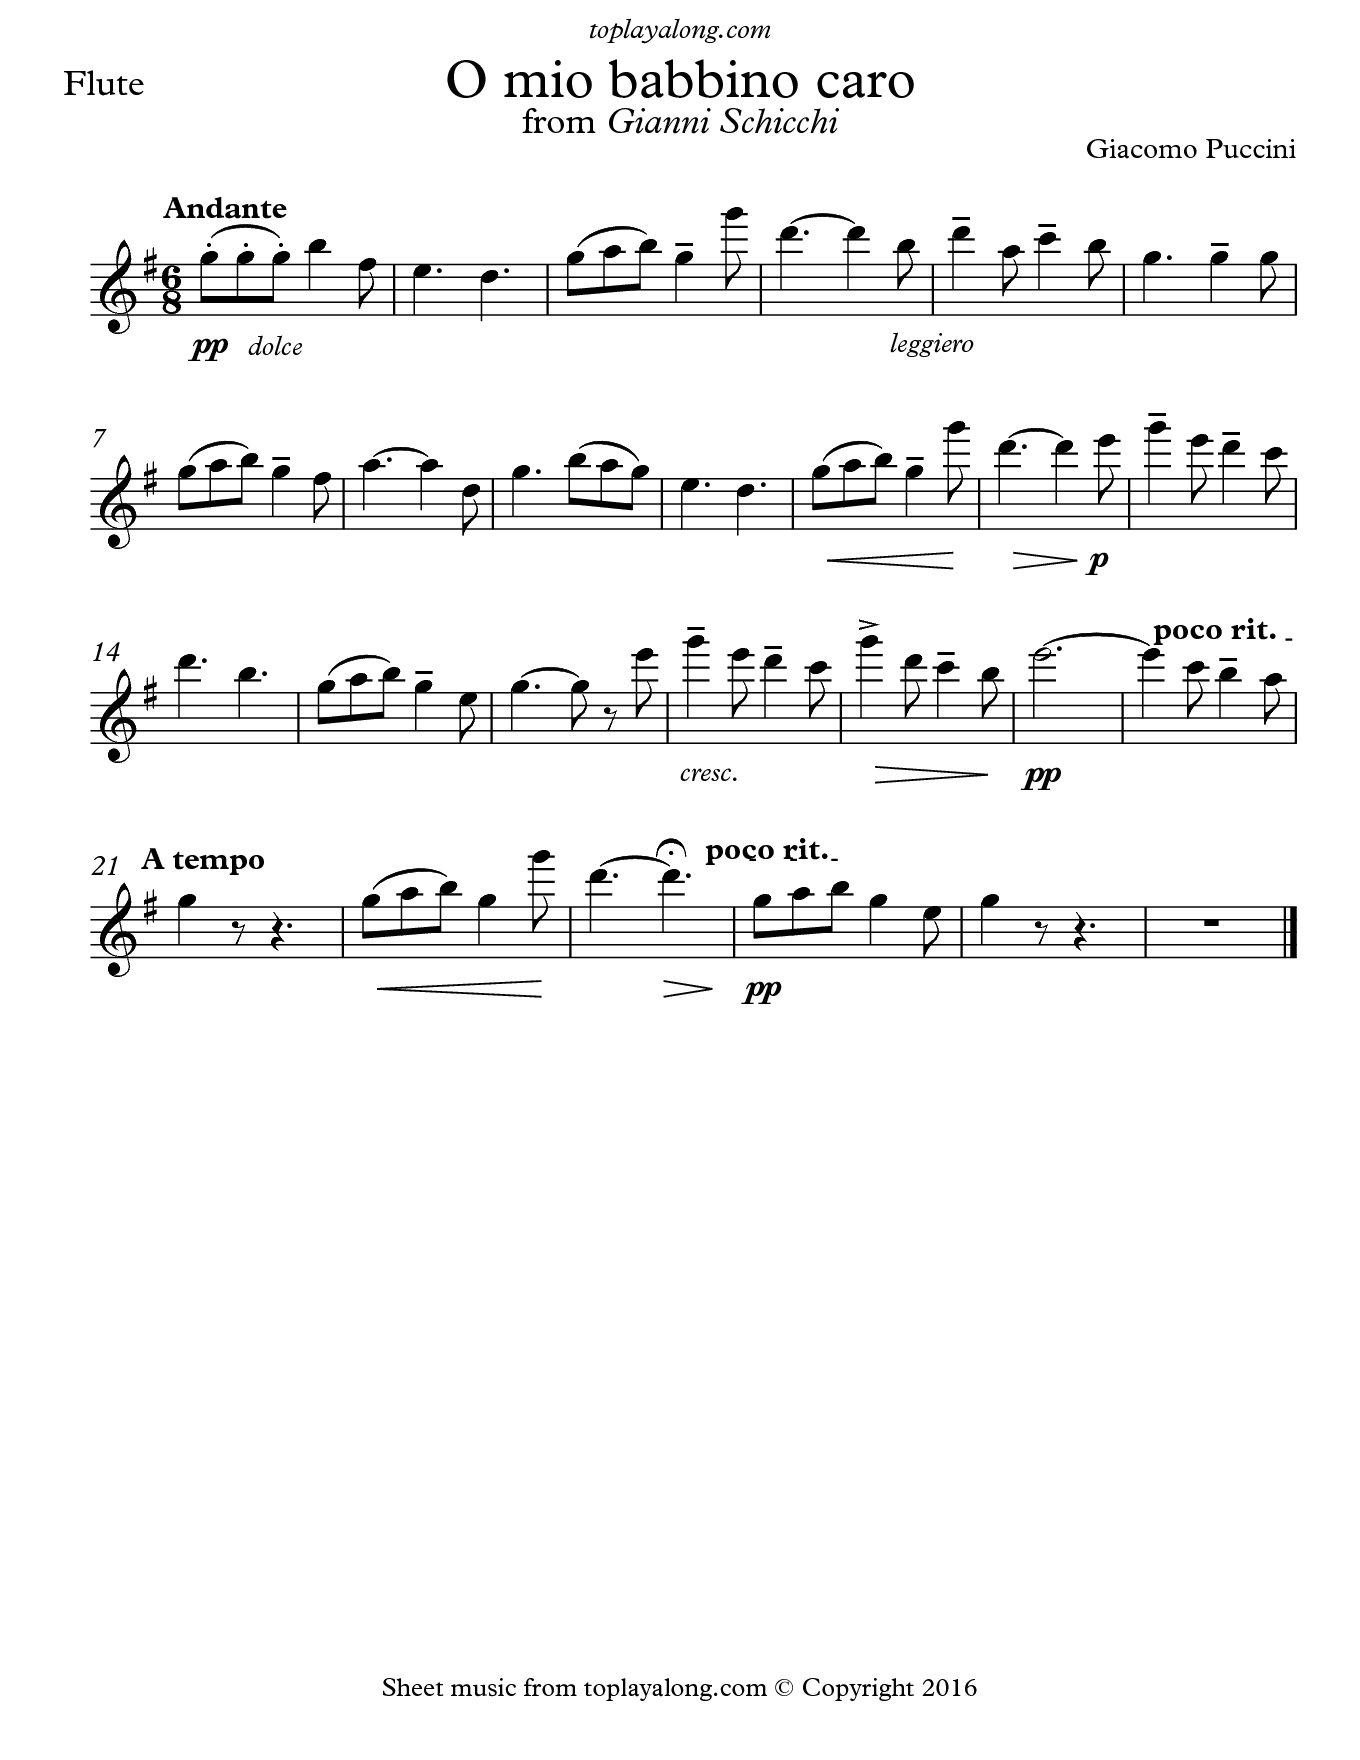 O mio babbino caro by Puccini. Sheet music for Flute, page 1.